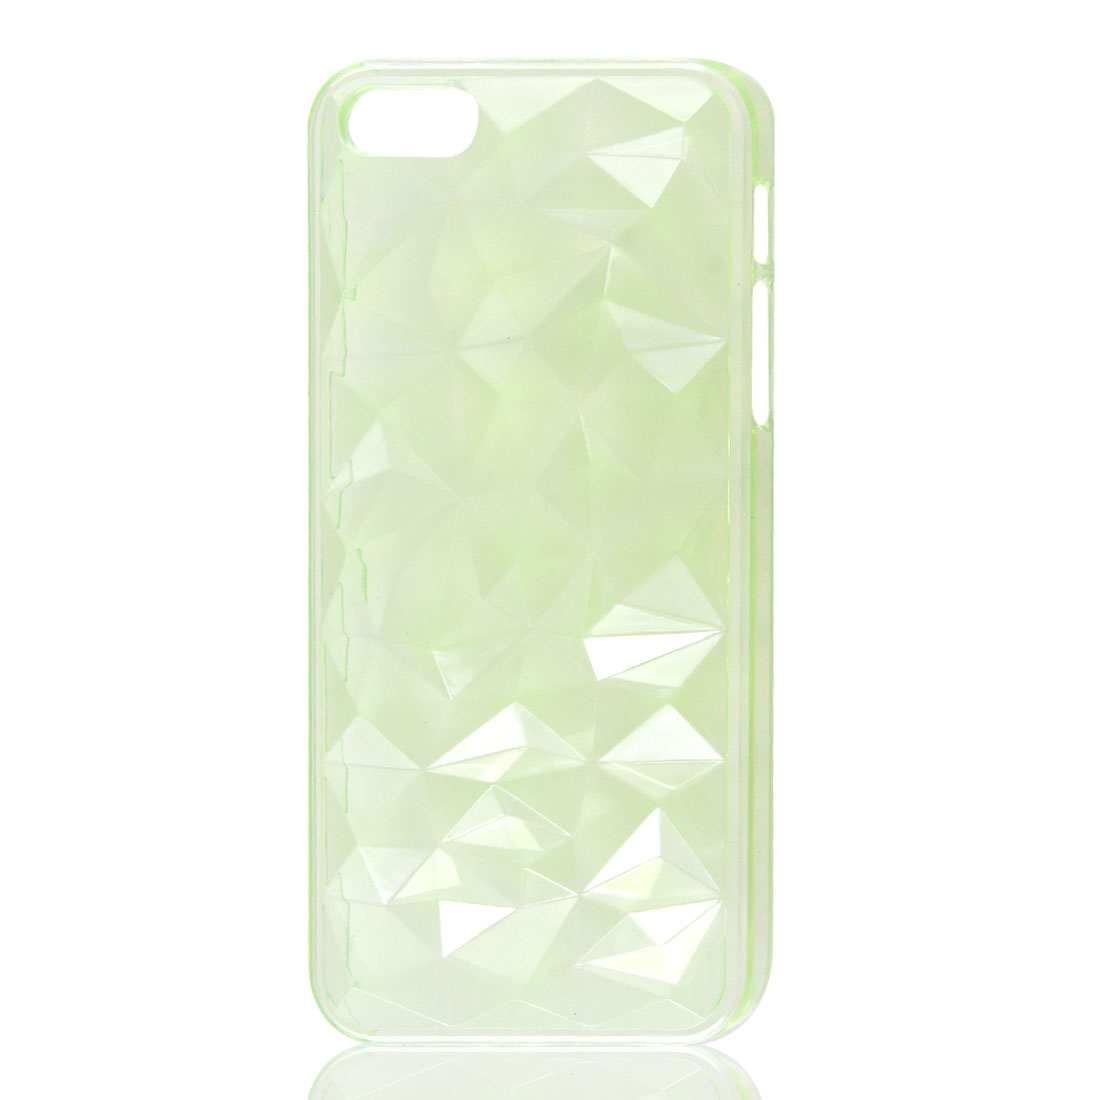 3D Water Cube Hard Back Case Cover Shell Light Green for iPhone 5 5G 5th Gen